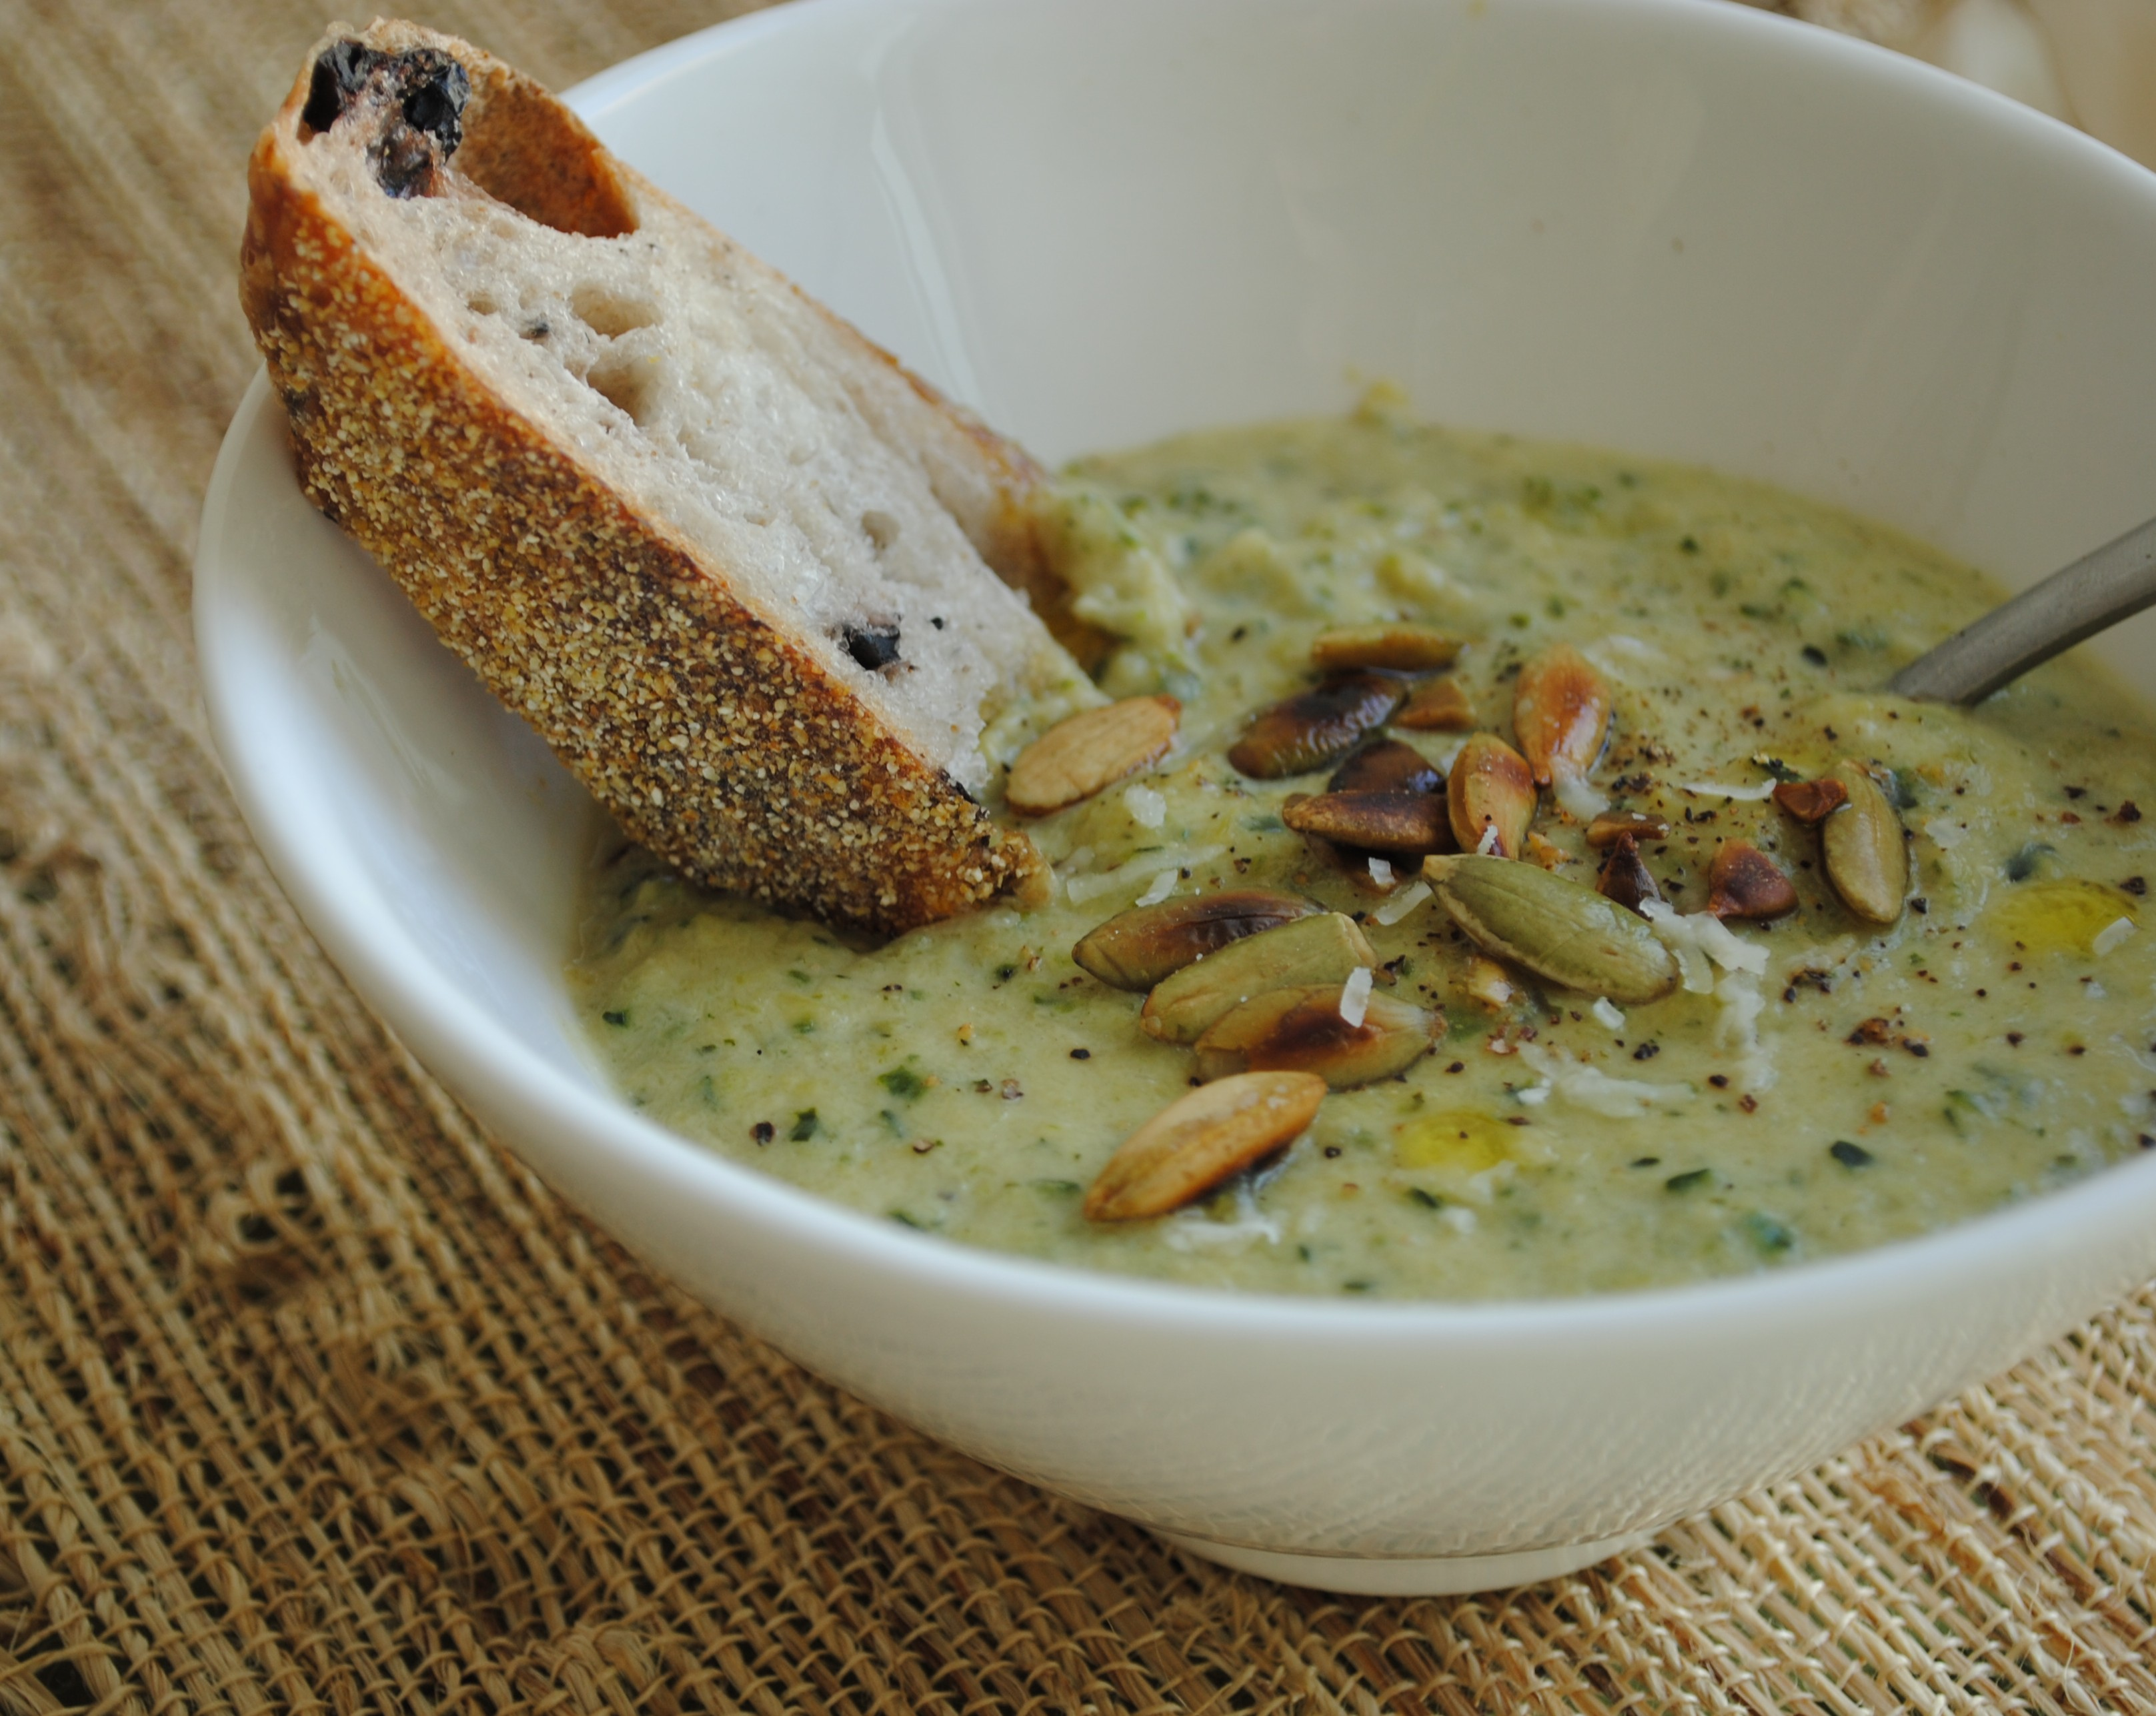 Parmigiano, Garlic and Zucchini Soup with Toasted Pumpkin Seeds